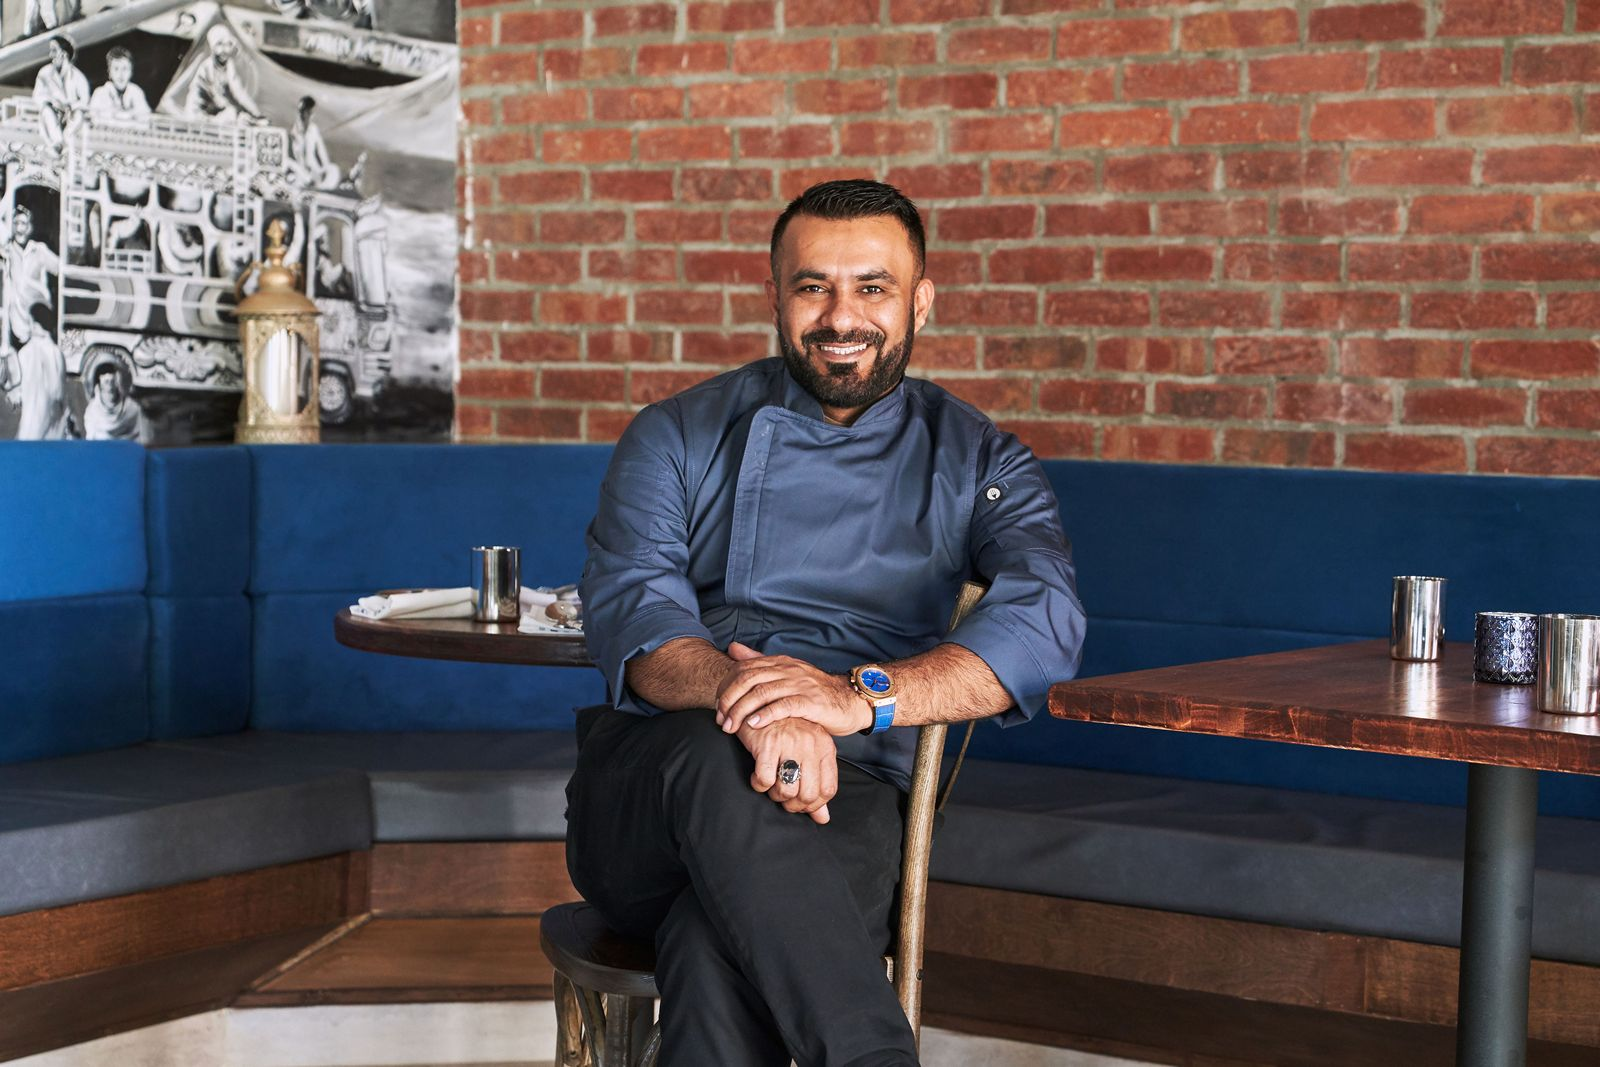 Award-Winning Chef Opens Khan Saab Desi Craft Kitchen in Downtown Fullerton